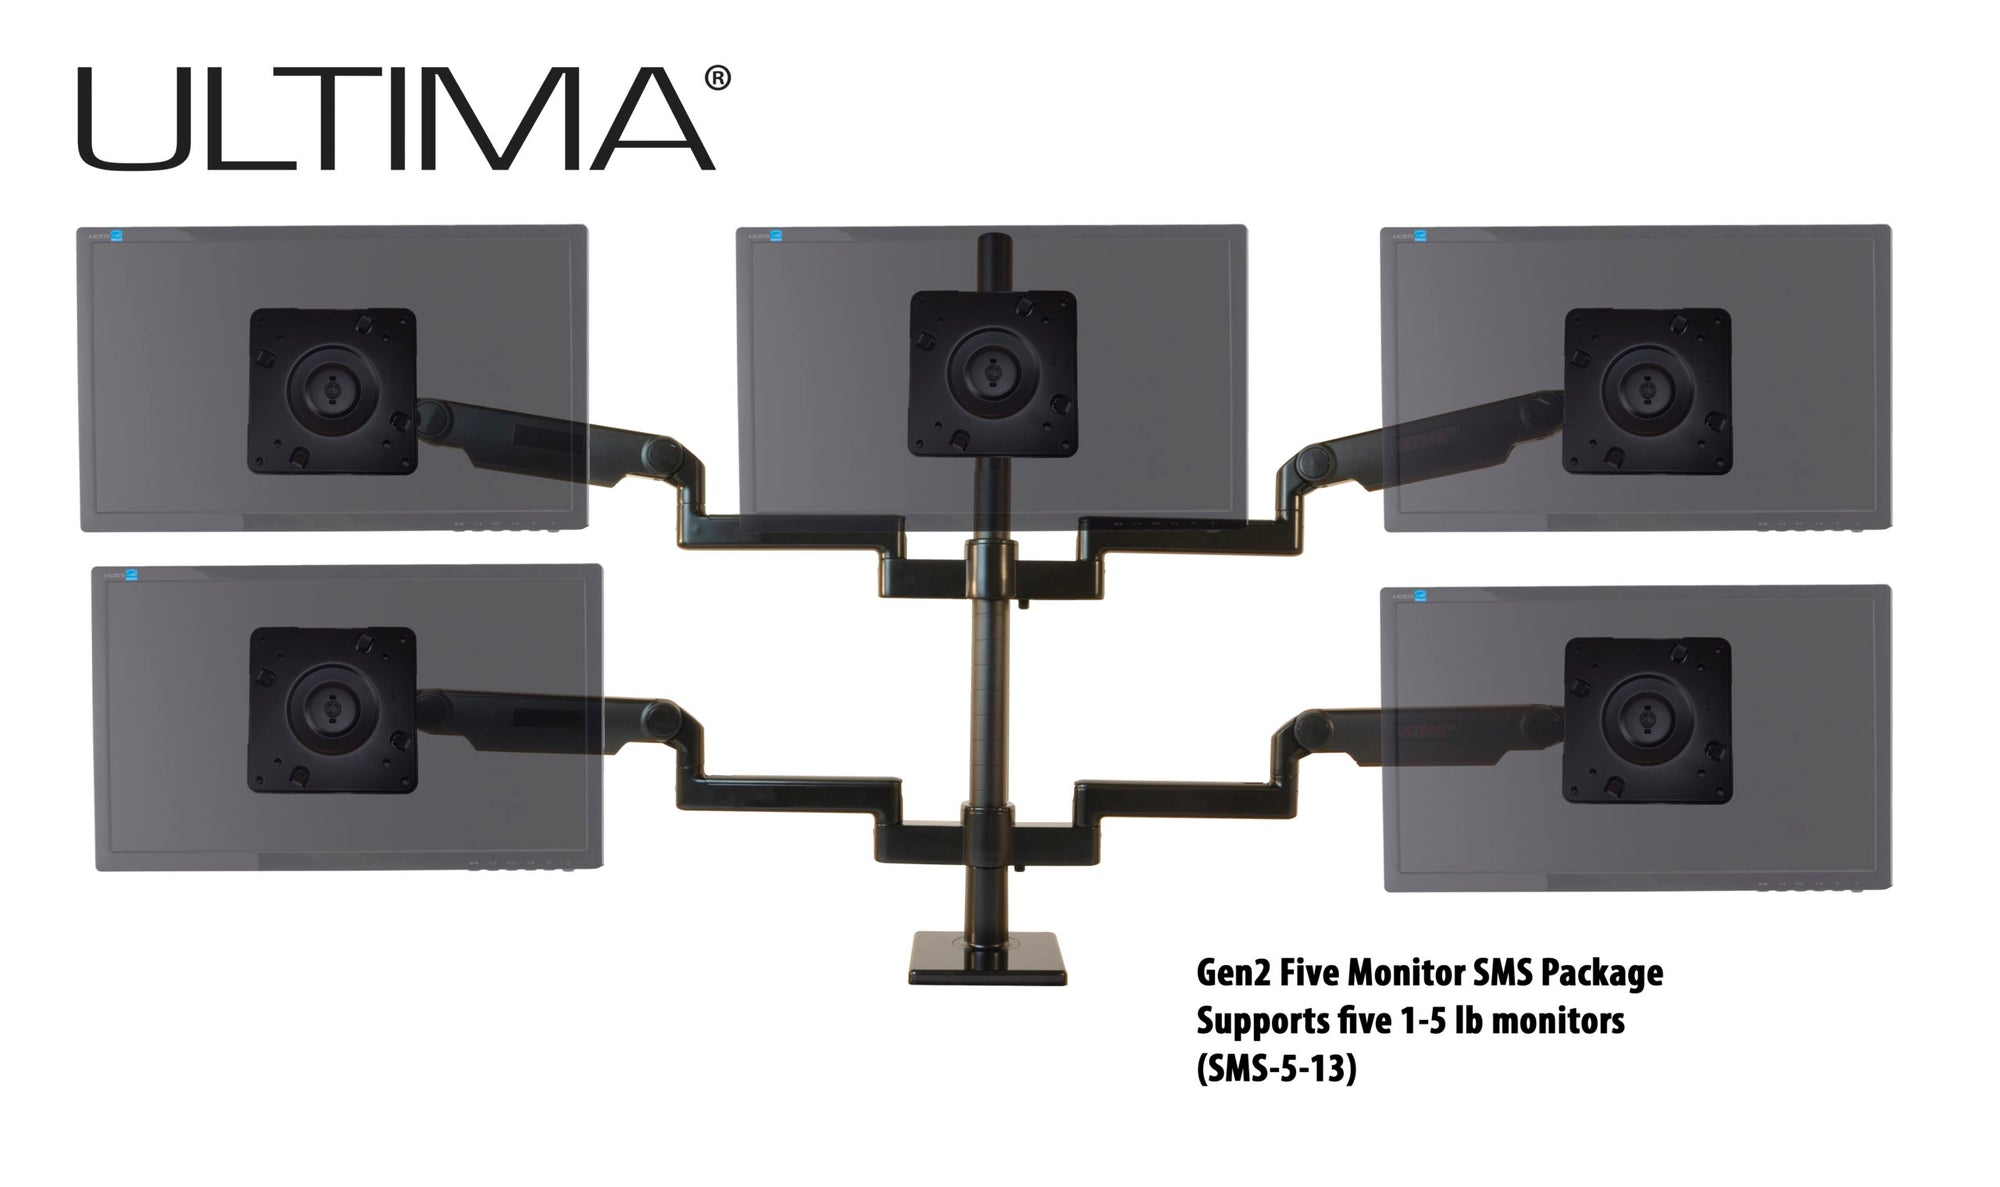 OC White SMS-5-13 & SMS-LD-5-13 Series ProBoom® Ultima® Gen2 Five Monitor SMS Package - 305broadcast